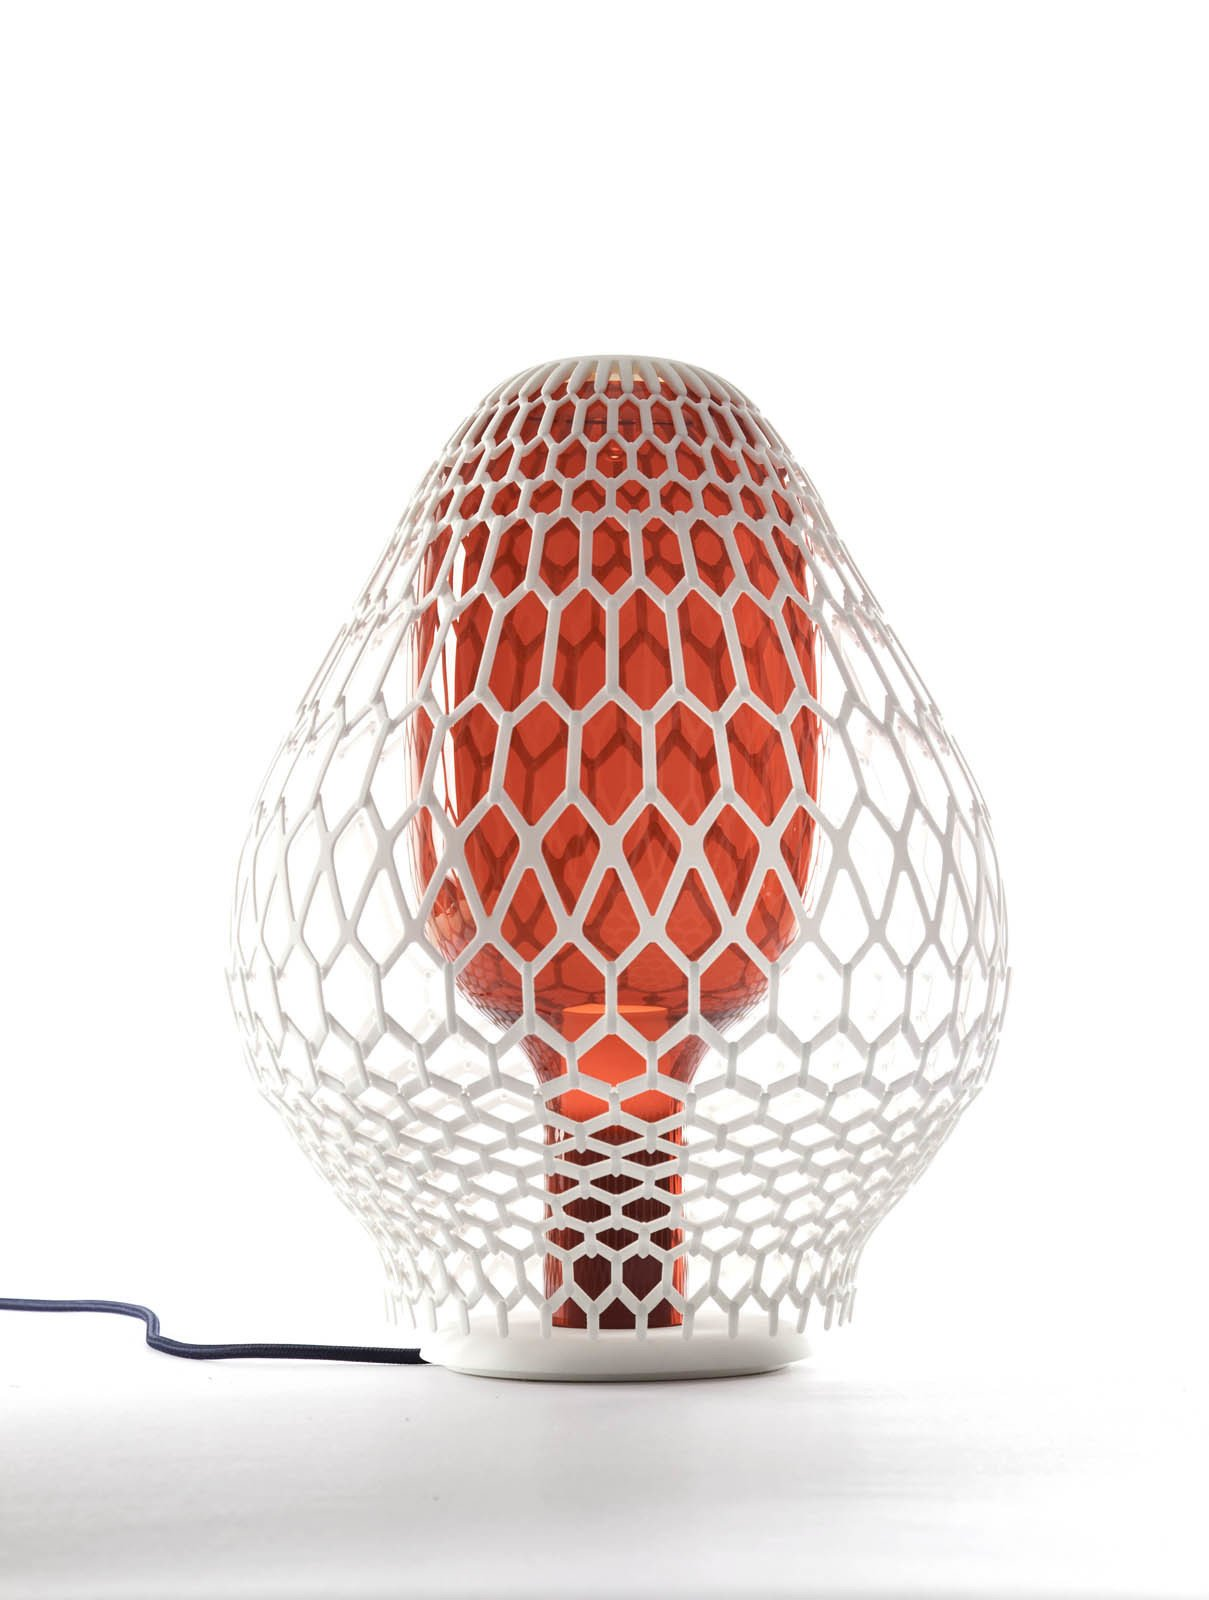 Rhizaria, also by Lanzavecchia + Wai, features a mouth-blown Murano glass shade enclosed in a 3D-printed lattice.  3D Printed Lighting by Exnovo by Diana Budds